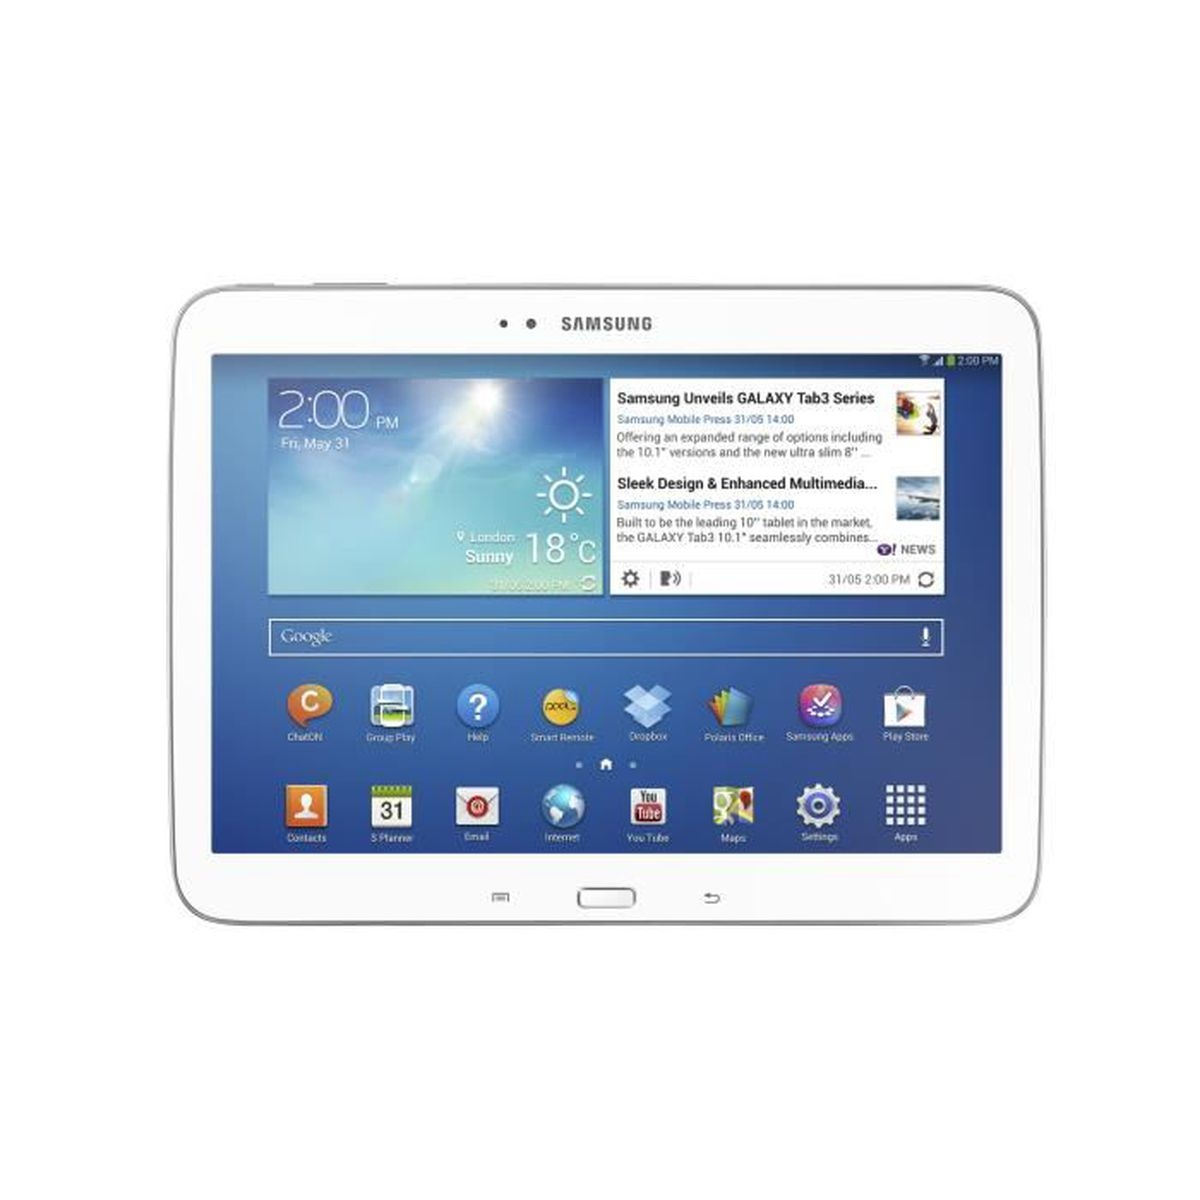 samsung galaxy tab 3 gt 5210 tablette tactile 10 pouces wifi 2 go ram 16 go disque dur ssd. Black Bedroom Furniture Sets. Home Design Ideas